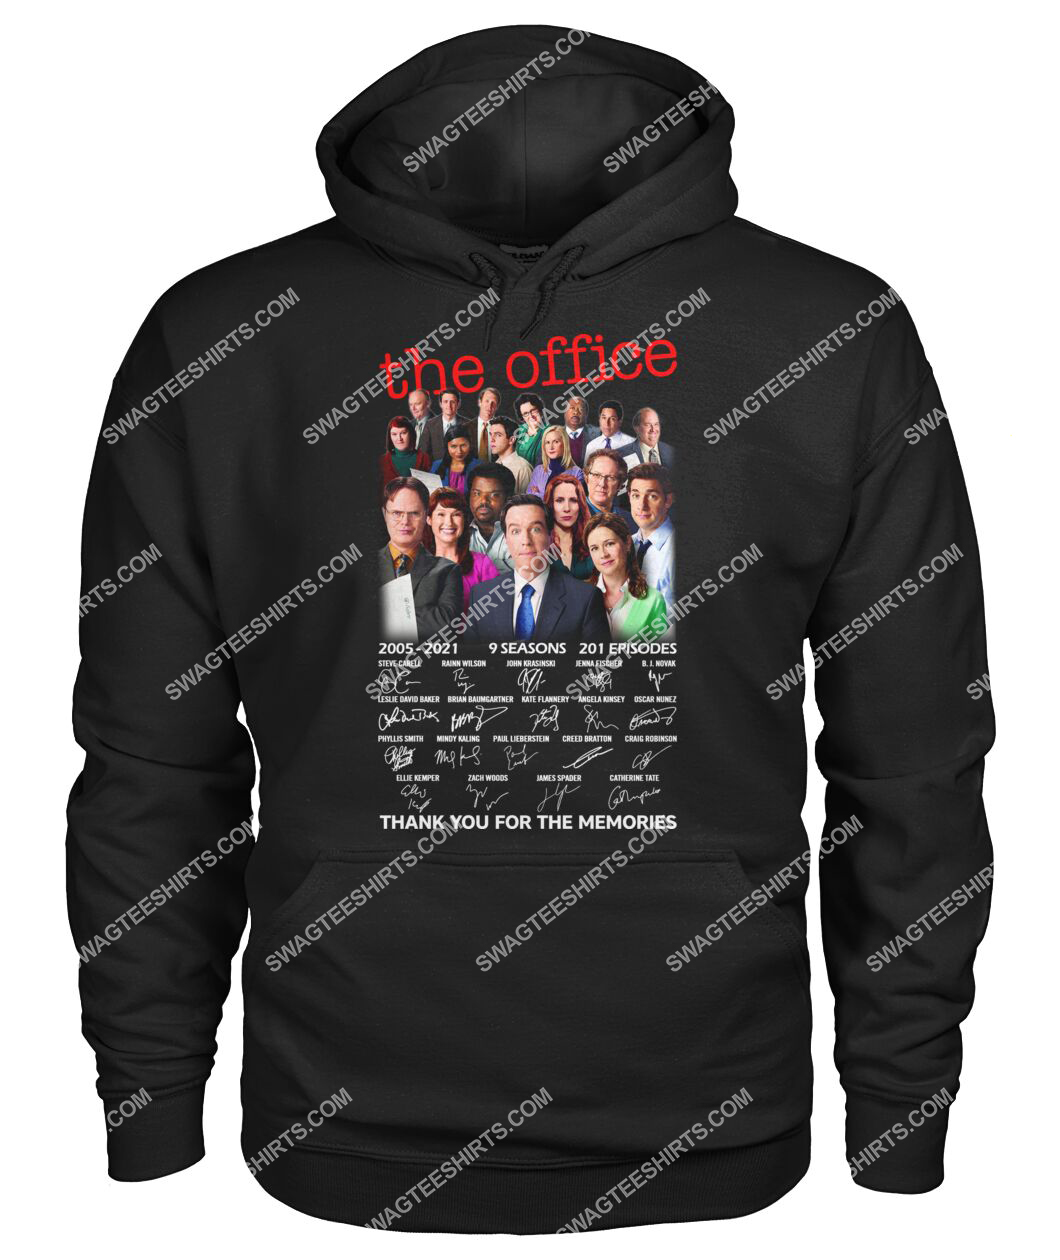 tv show the office thank you for the memories signatures hoodie 1